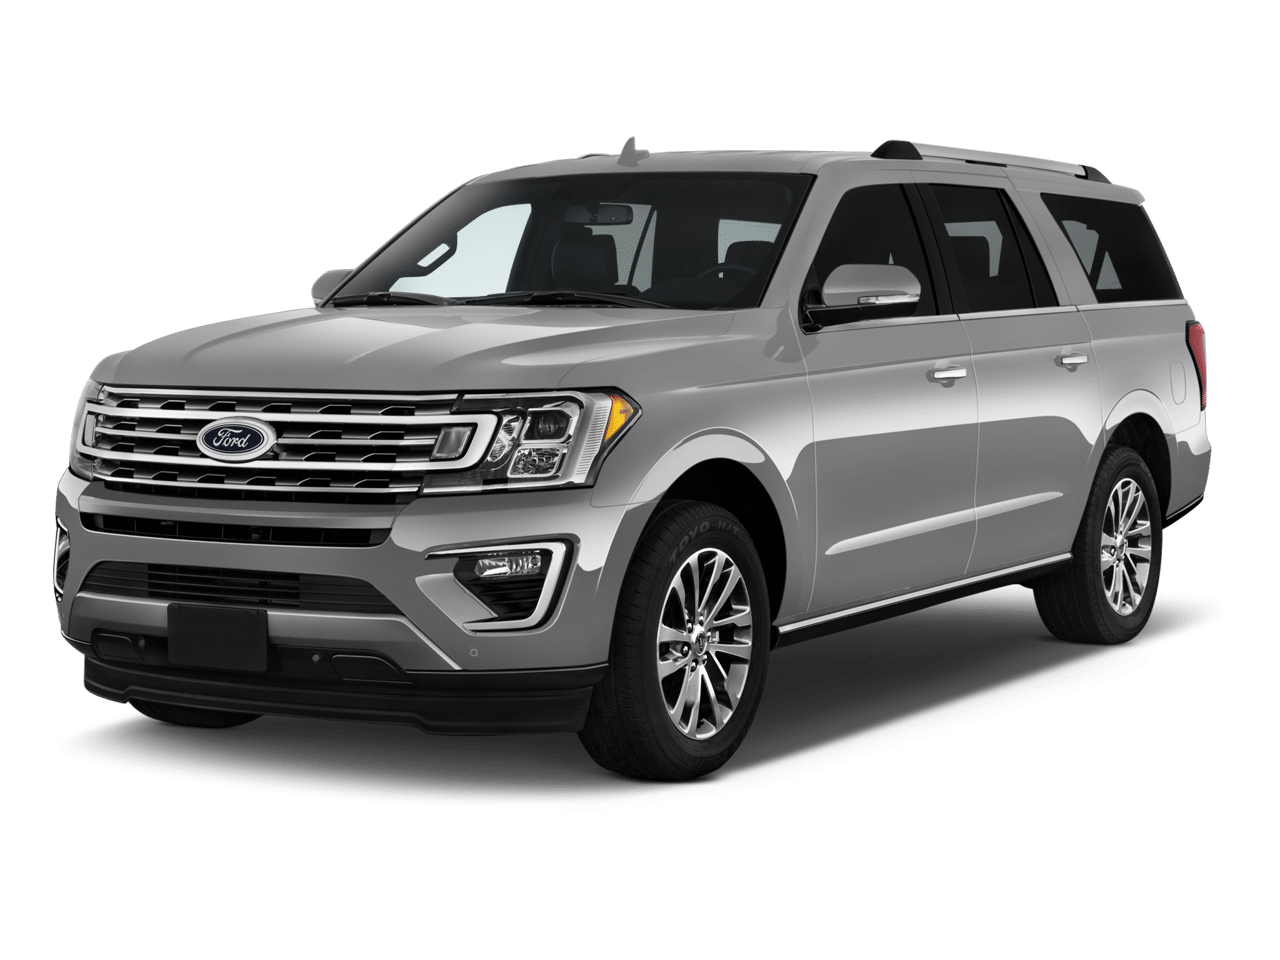 Pacific-Car-Rentals-Fullsize-SUV-Ford-Expedition-Max